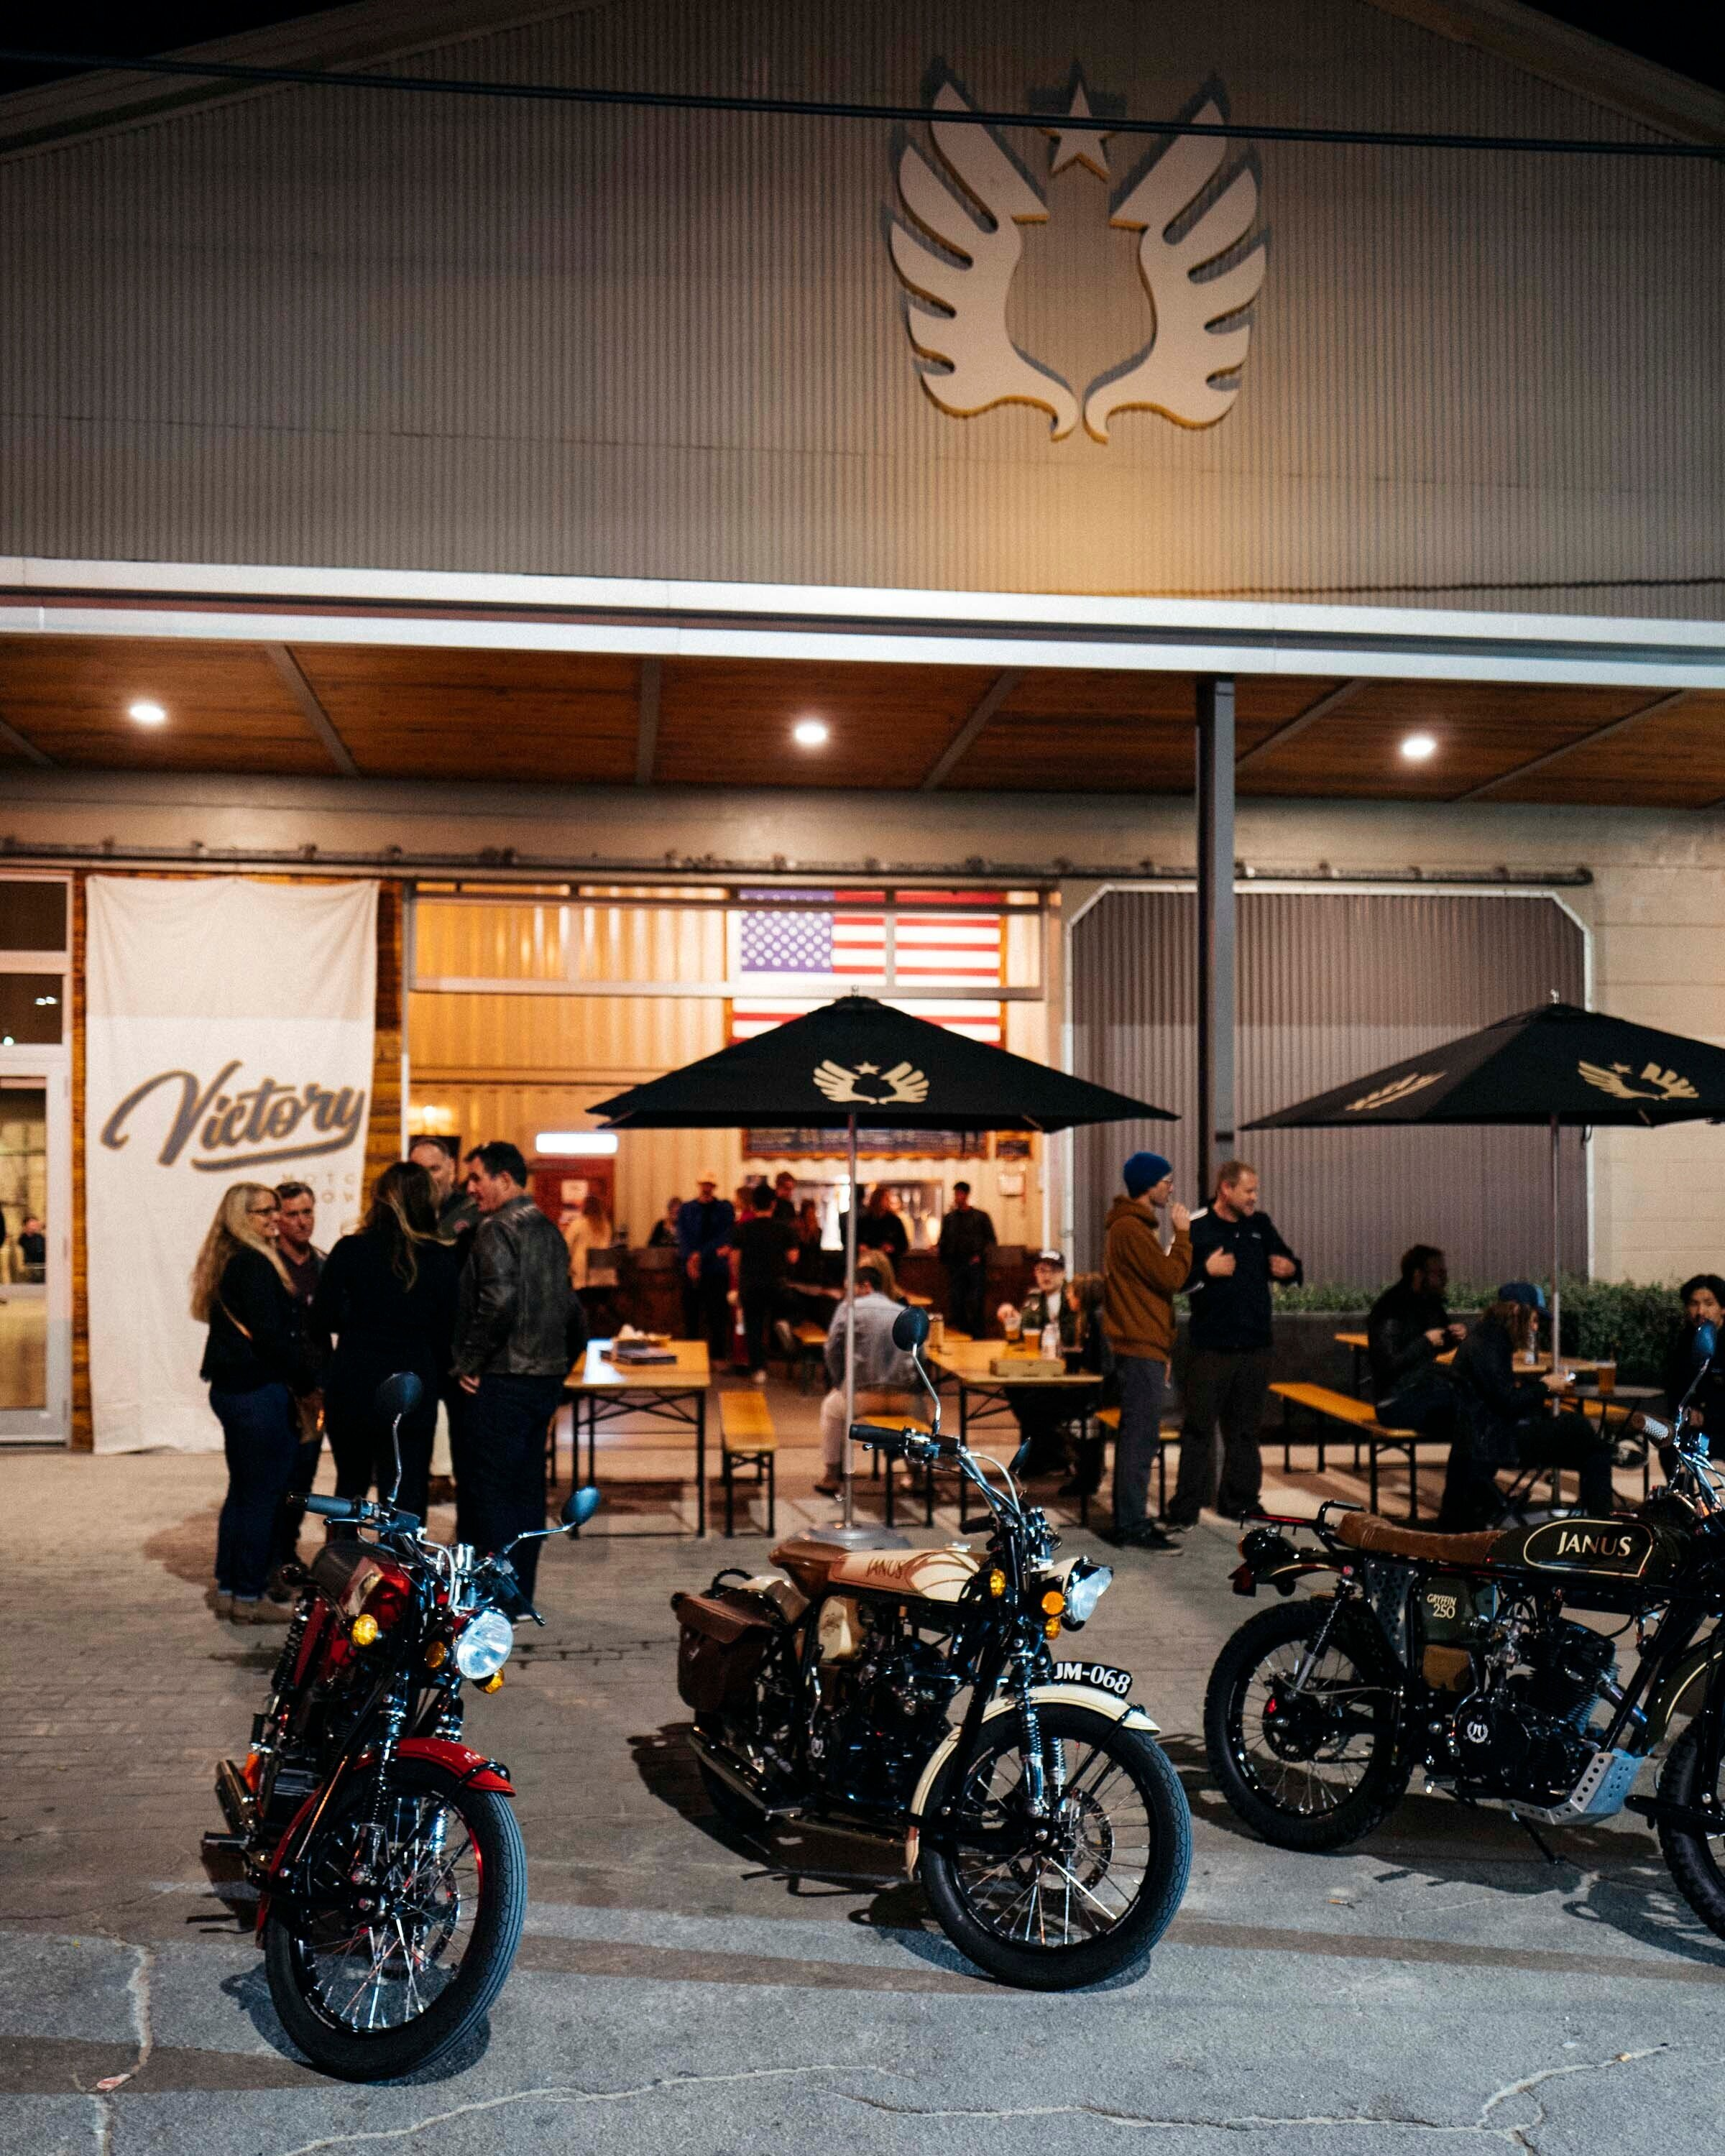 SATURDAY, NOV 9 SERVICE BREWING - 574 INDIAN STREET, SAVANNAH GAADMISSION:$10 // a portion of proceeds benefit the Motorcycle Relief ProjectEVENT TIME:SATURDAY, NOVEMBER 9 2019NOON-10PMNOON - 4PM (SHOWROOM ONLY FAMILY FRIENDLY )4PM -10PM ( ALL GUEST MUST BE 21+)